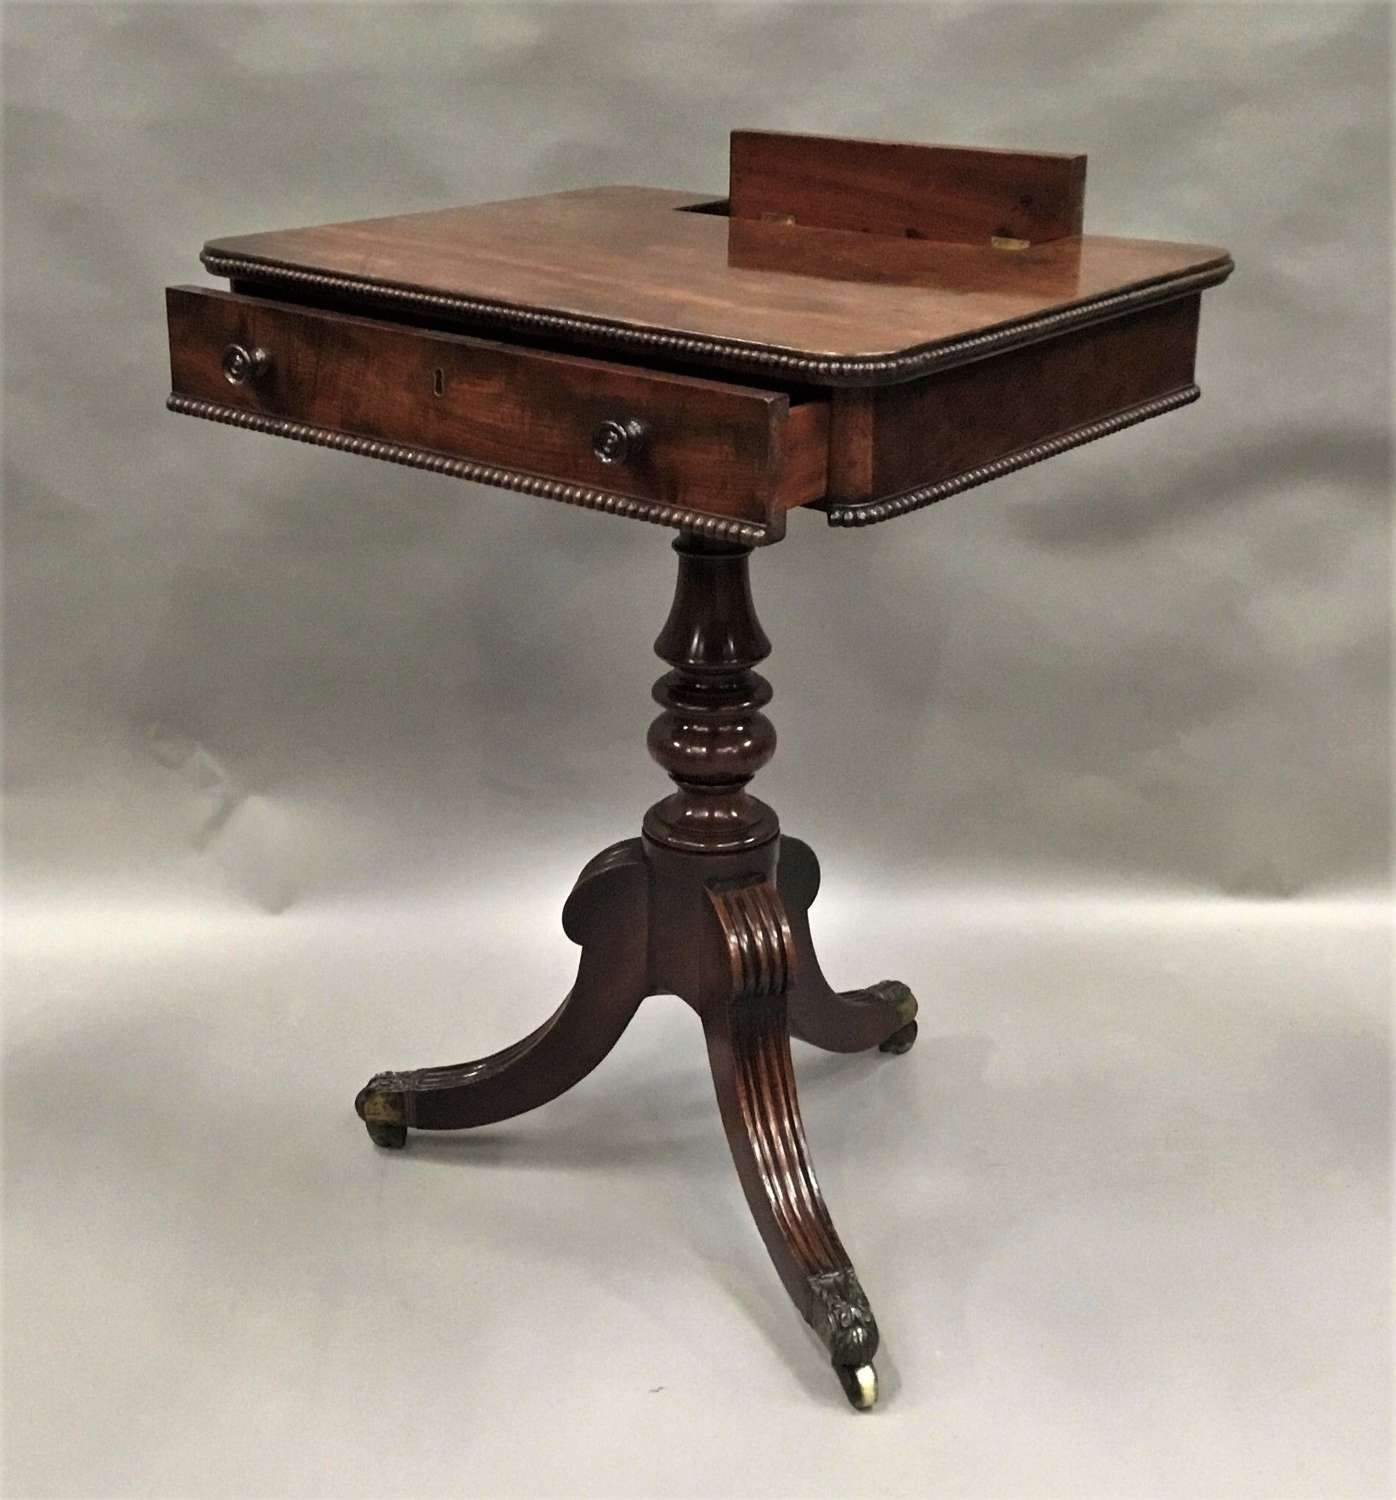 Regency Gillow mahogany writing / occasional table